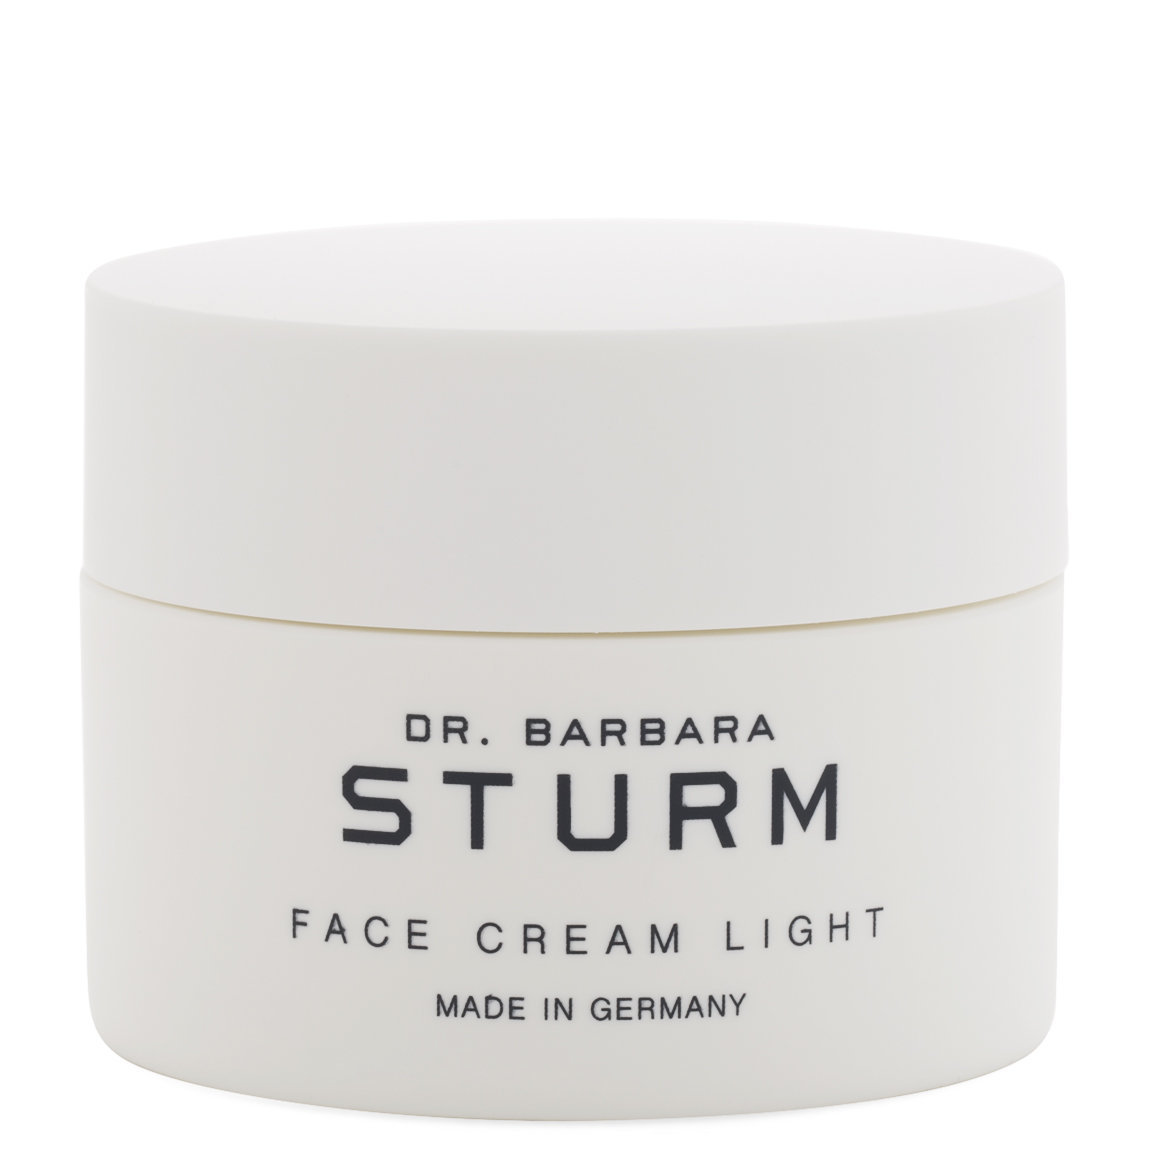 Dr. Barbara Sturm Face Cream Light product smear.